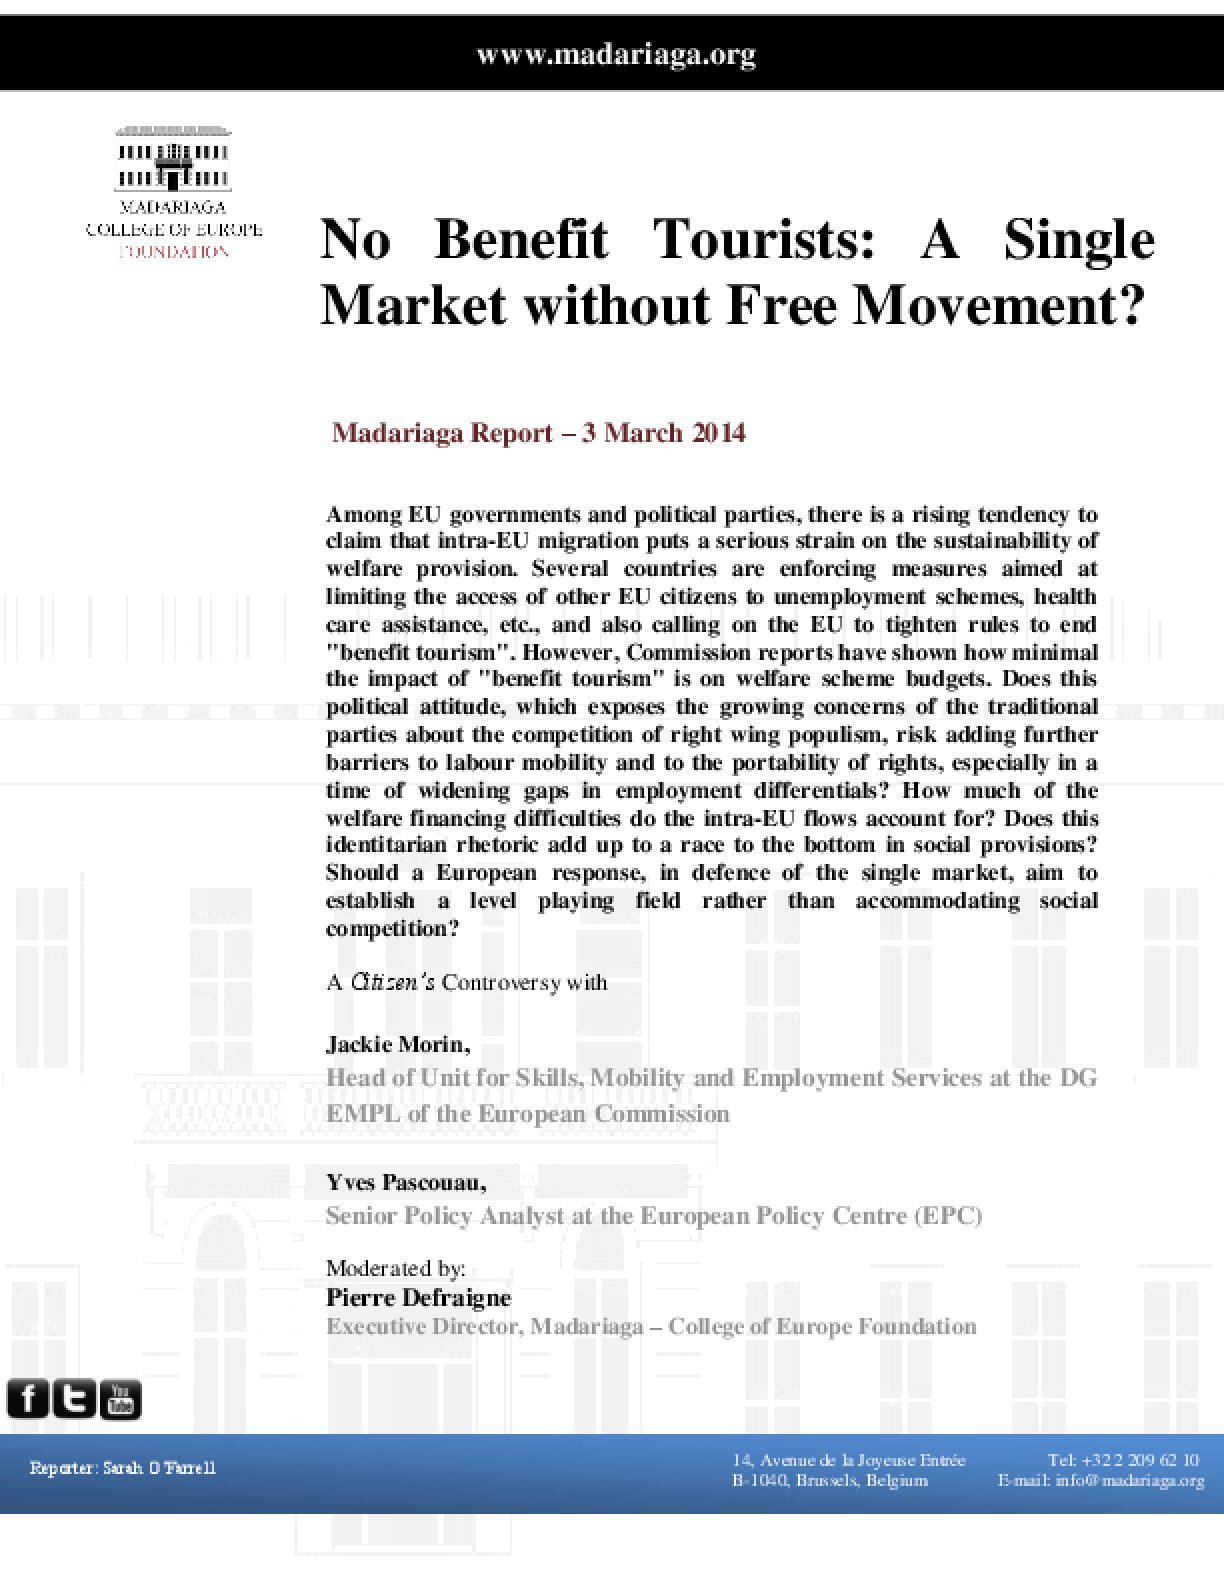 No Benefit Tourists: A Single Market without Free Movement?